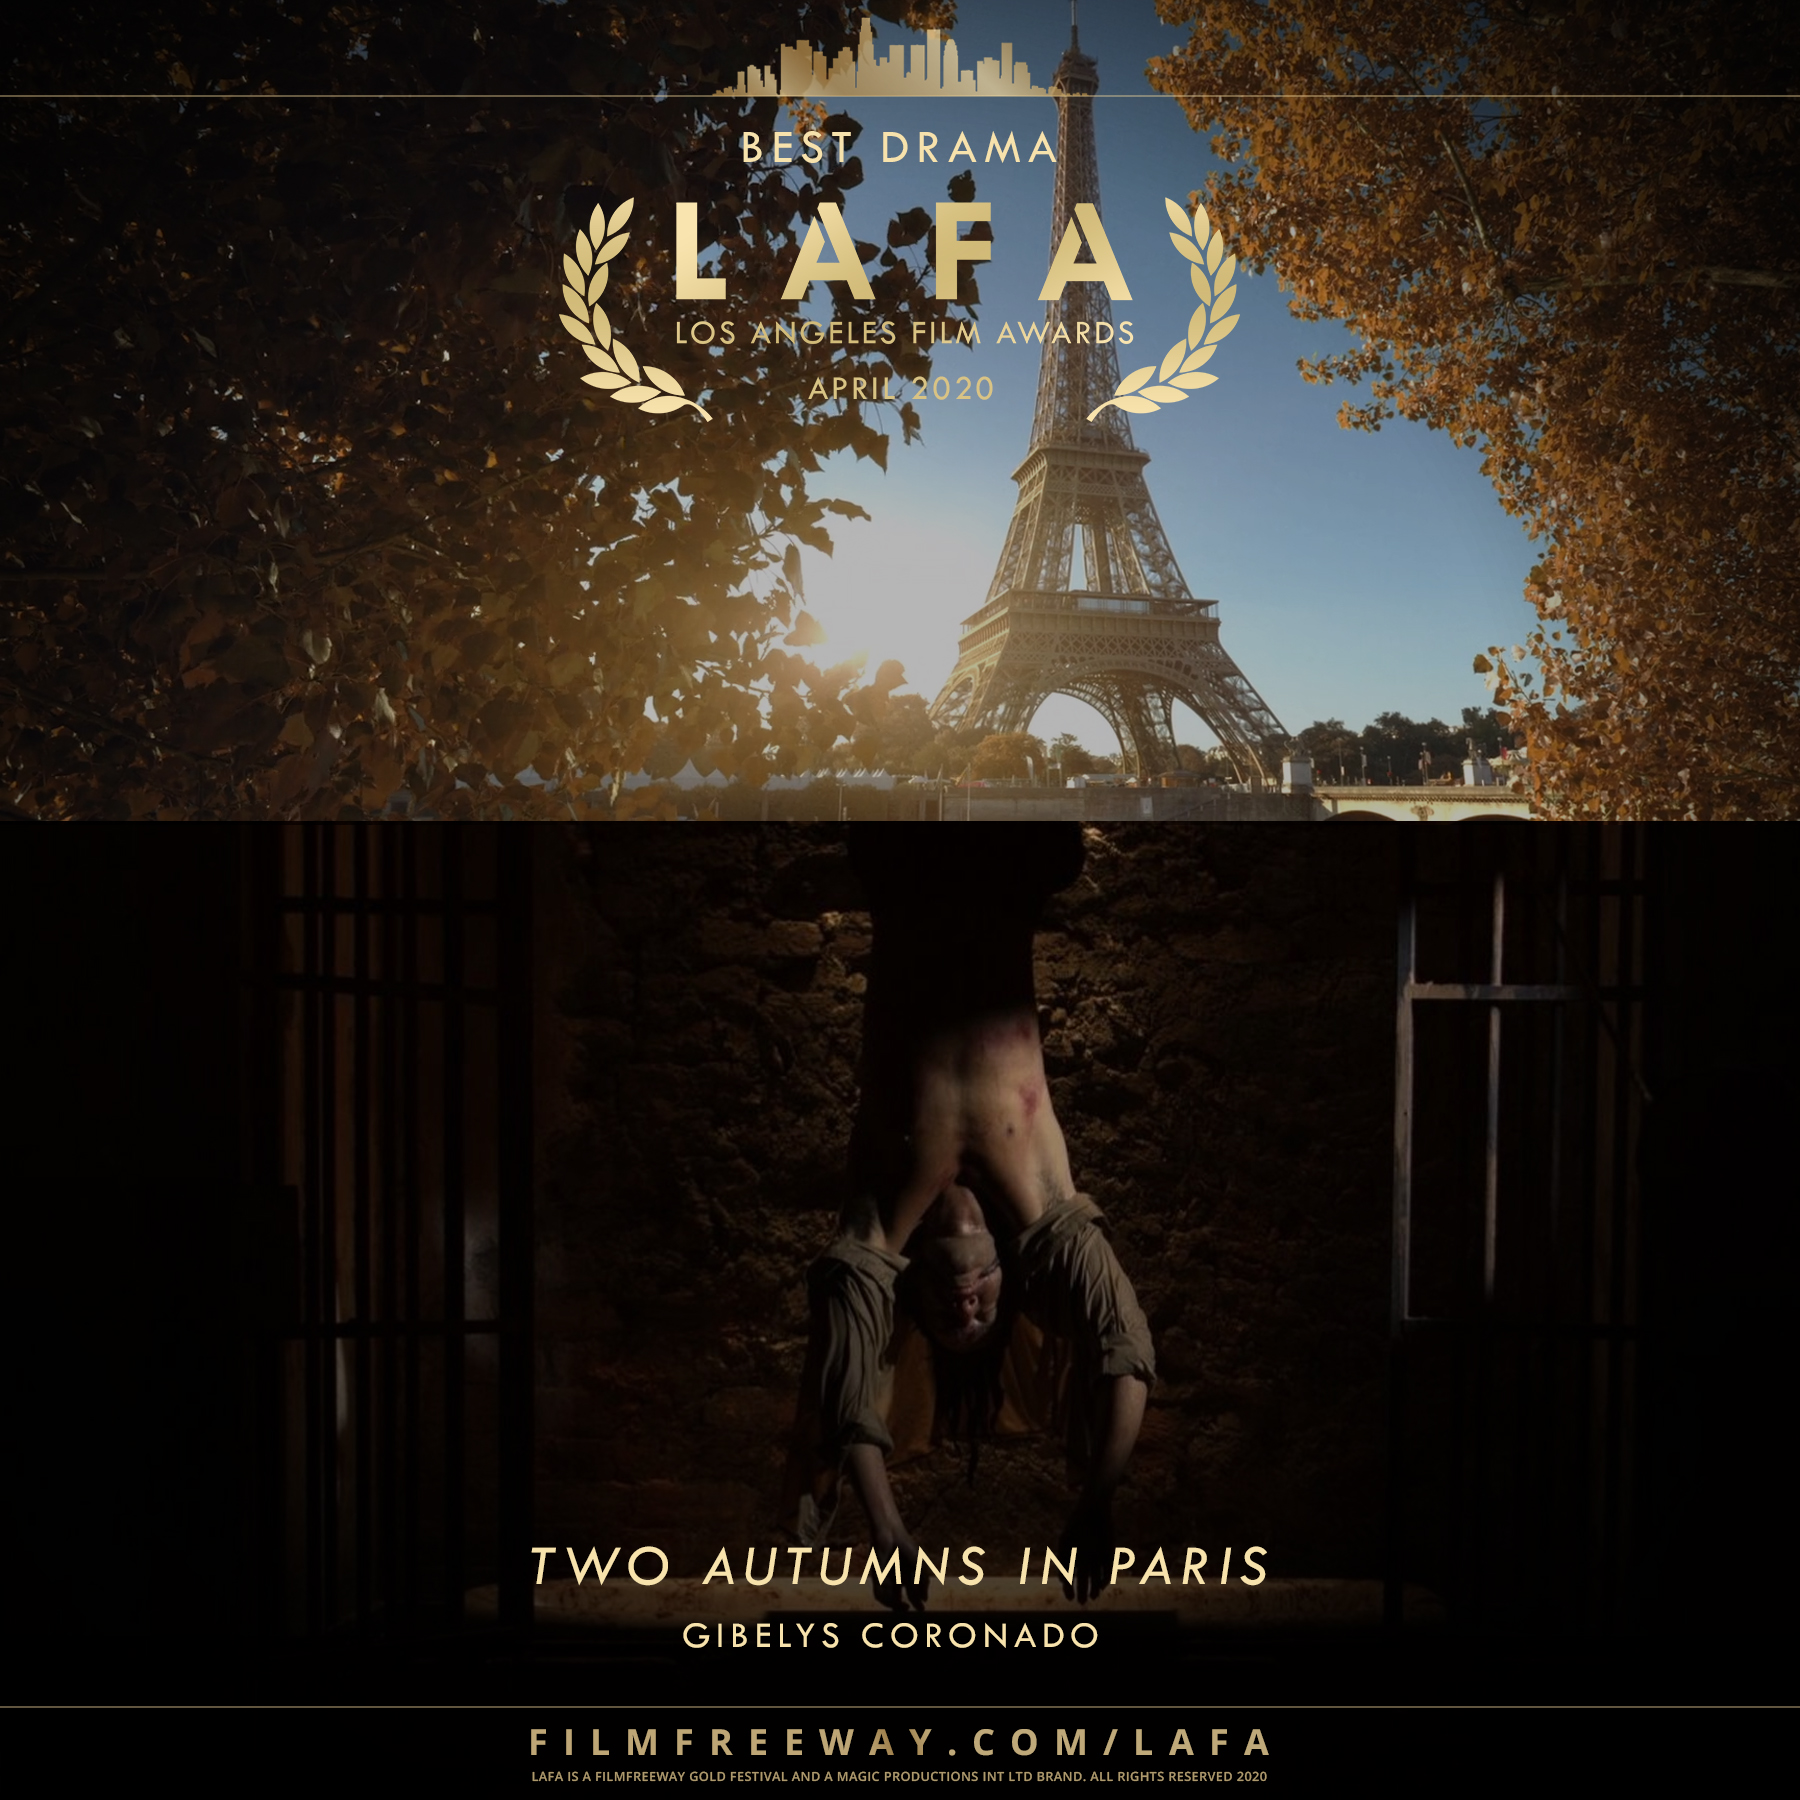 Two Autumns in Paris design